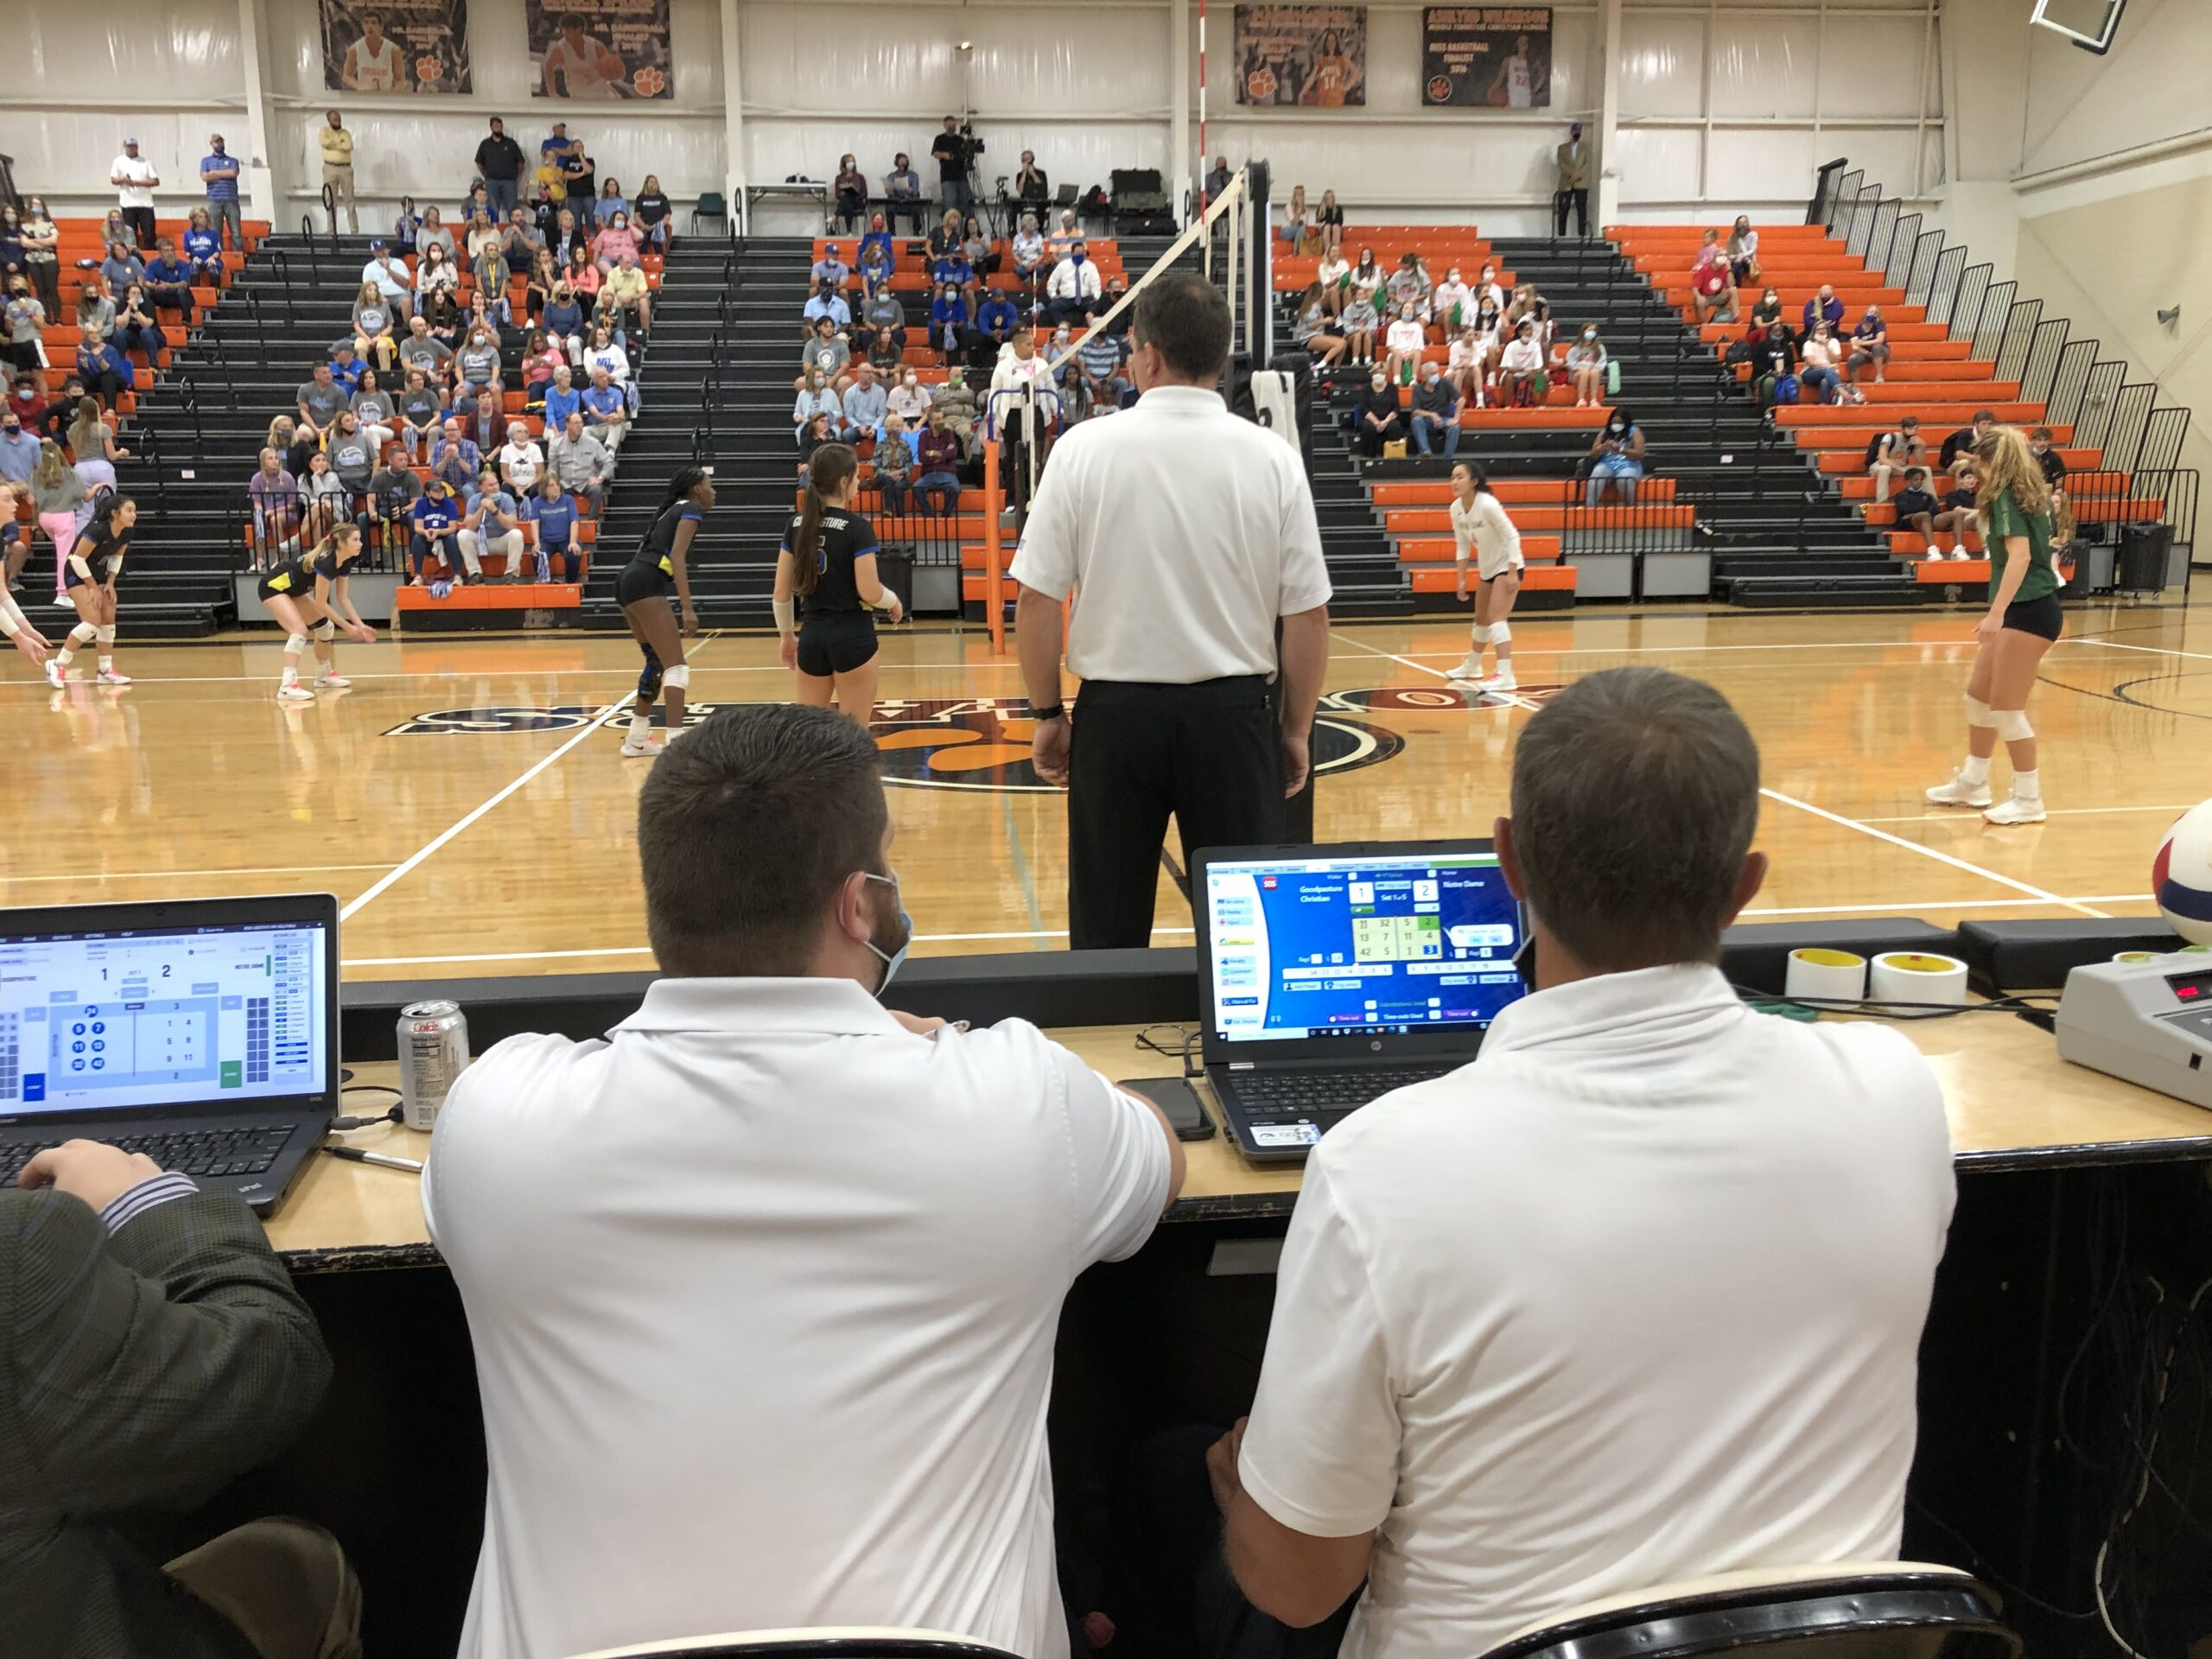 Shows VolleyWrite scorer at the TSSAA State Volleyball DI Finals